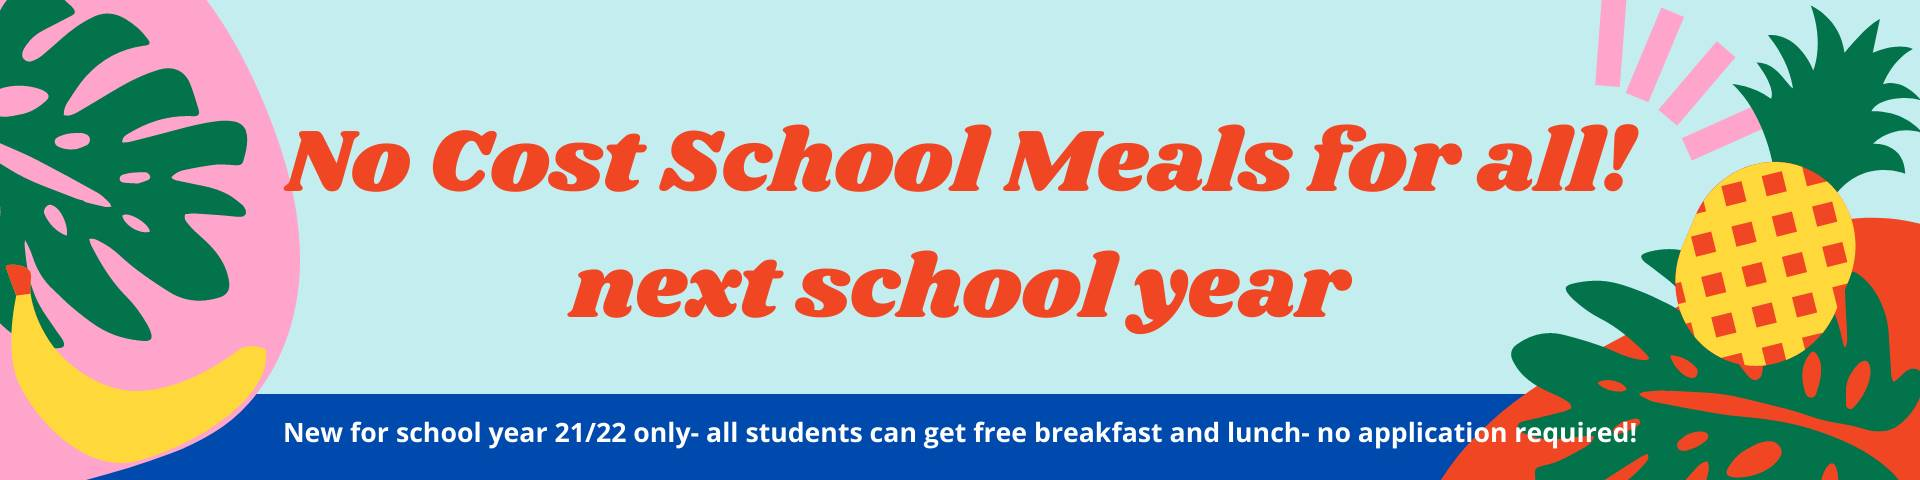 no cost meals available for all students next school year!